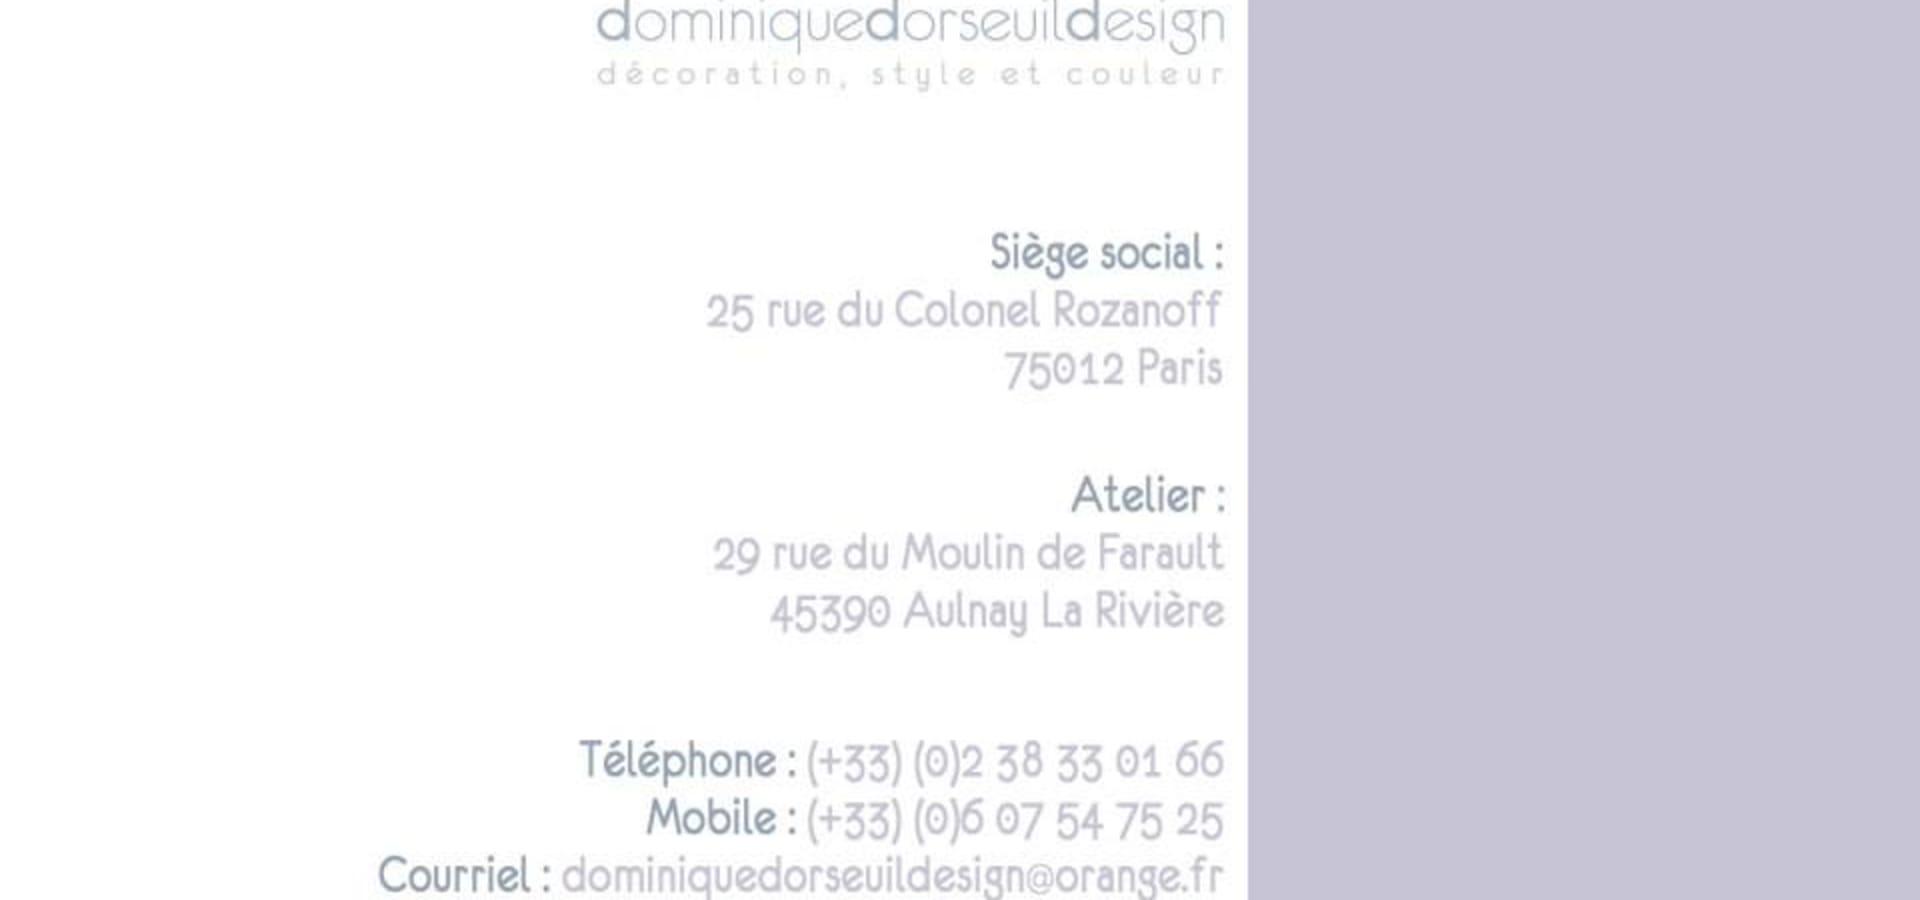 Dominique Dorseuil Design